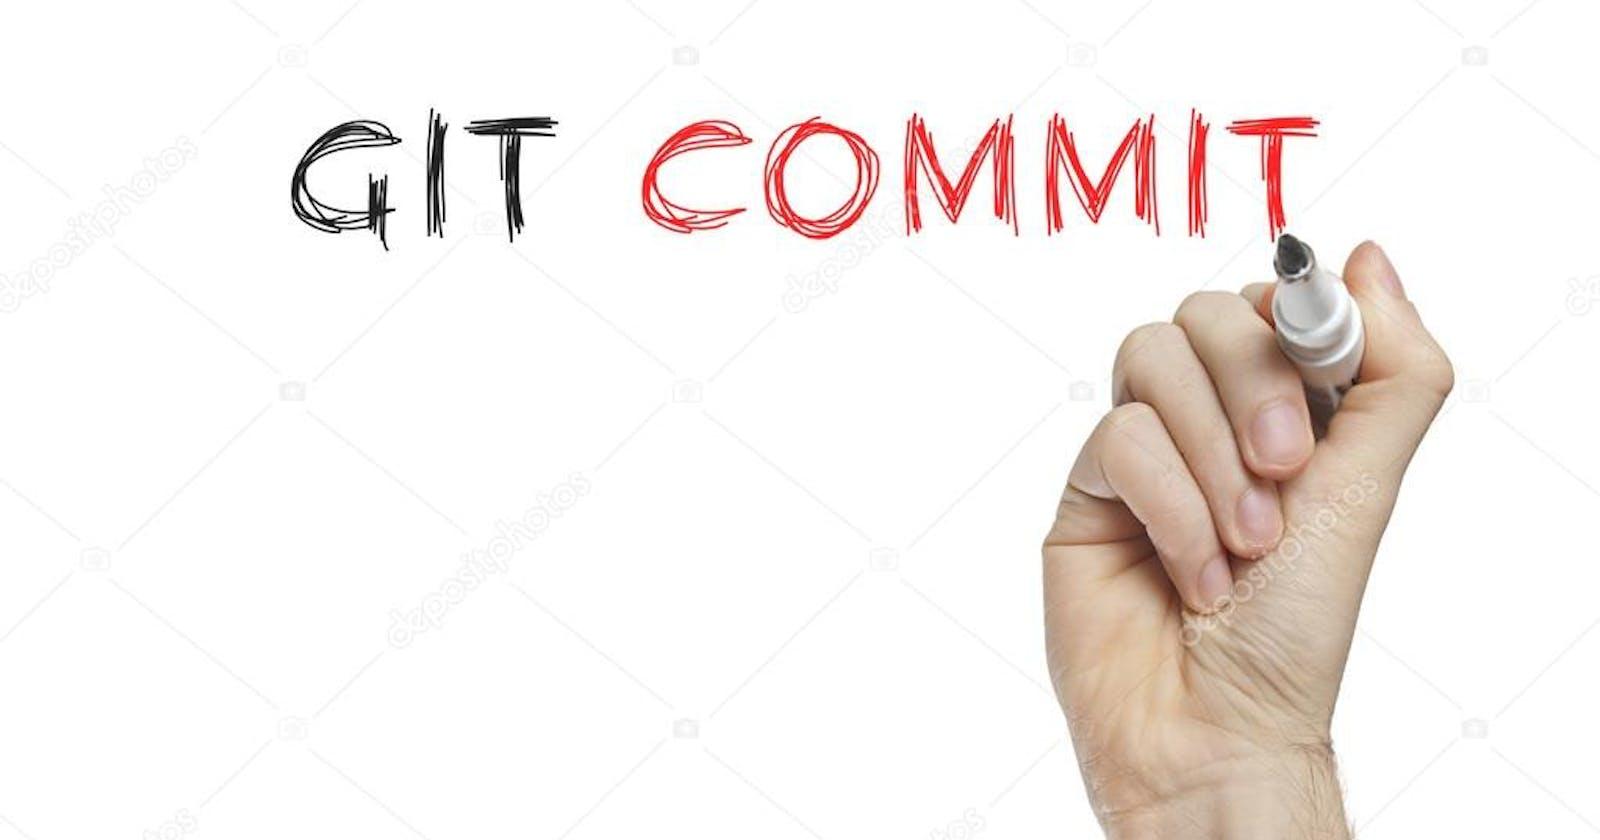 Consistent Git Commit Messages Using a Template